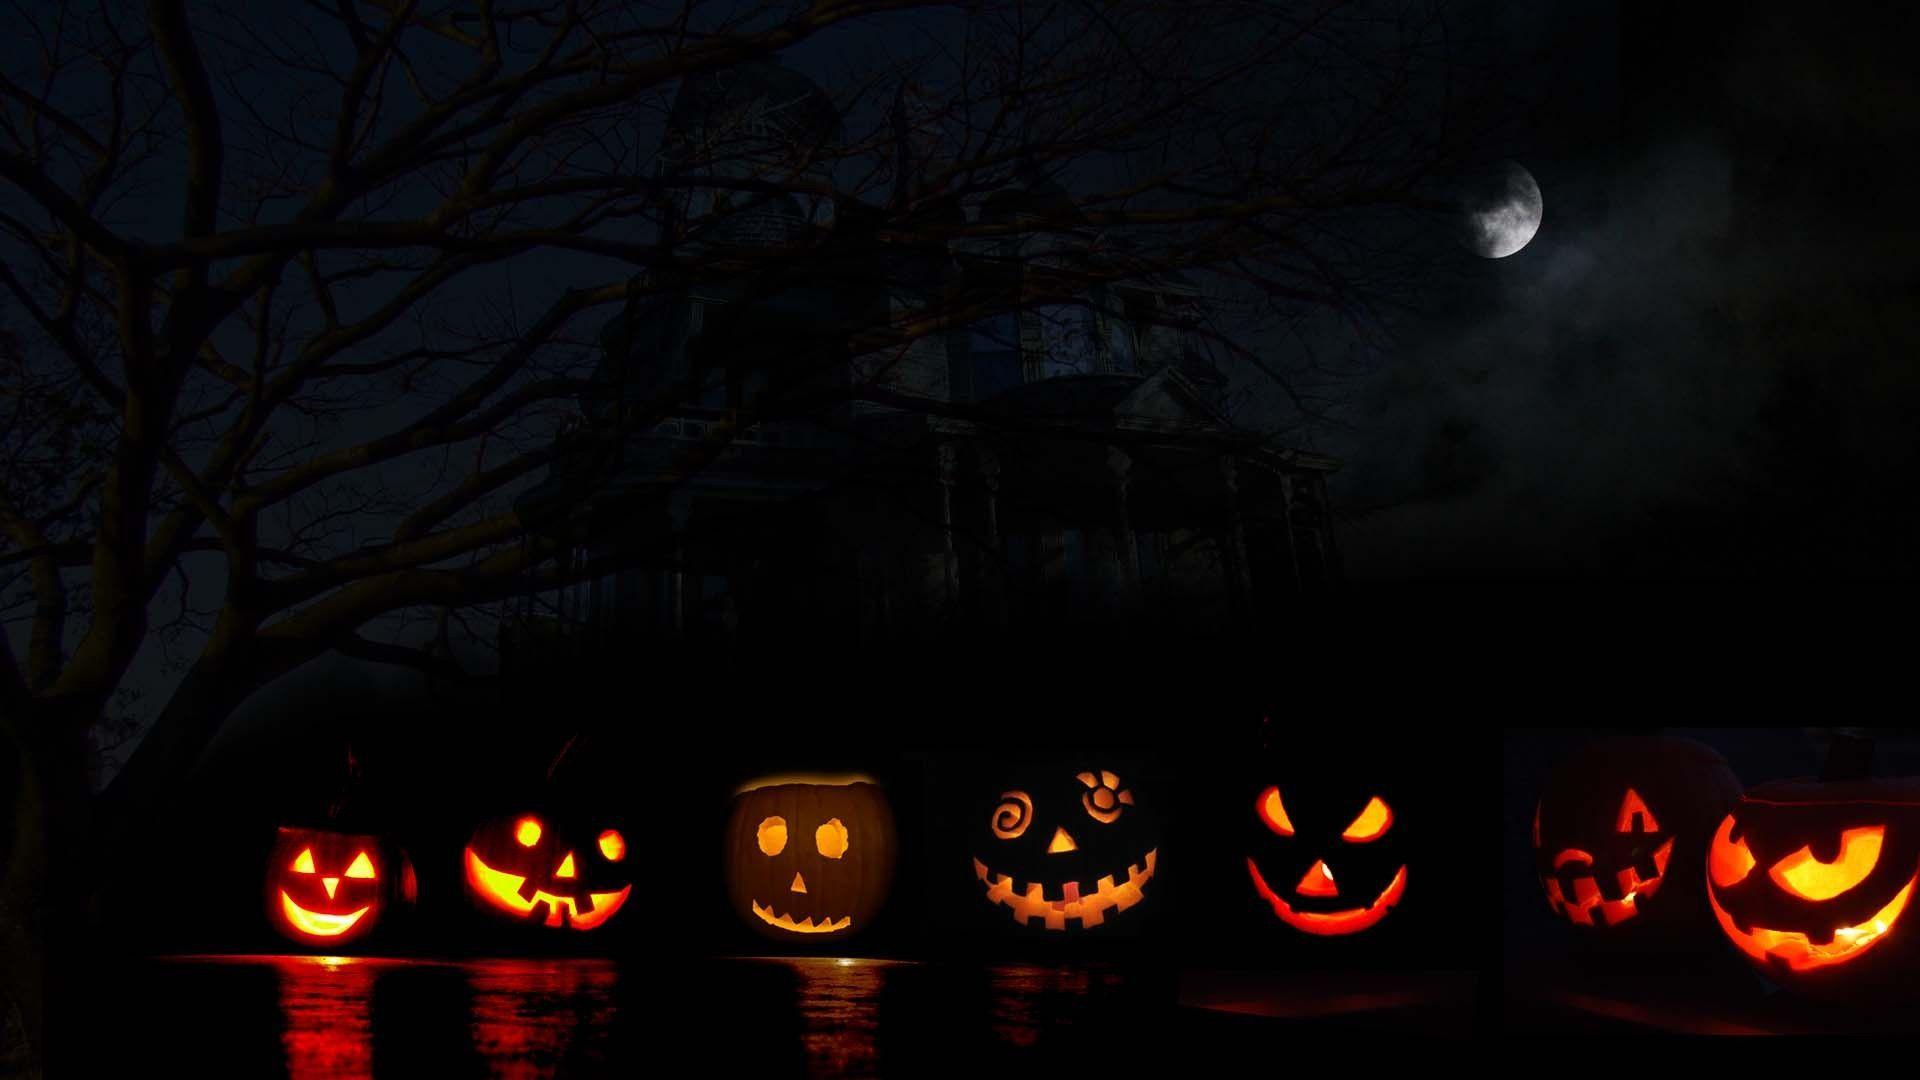 Halloween Wallpaper for PC 30 Background Pictures 1920x1080